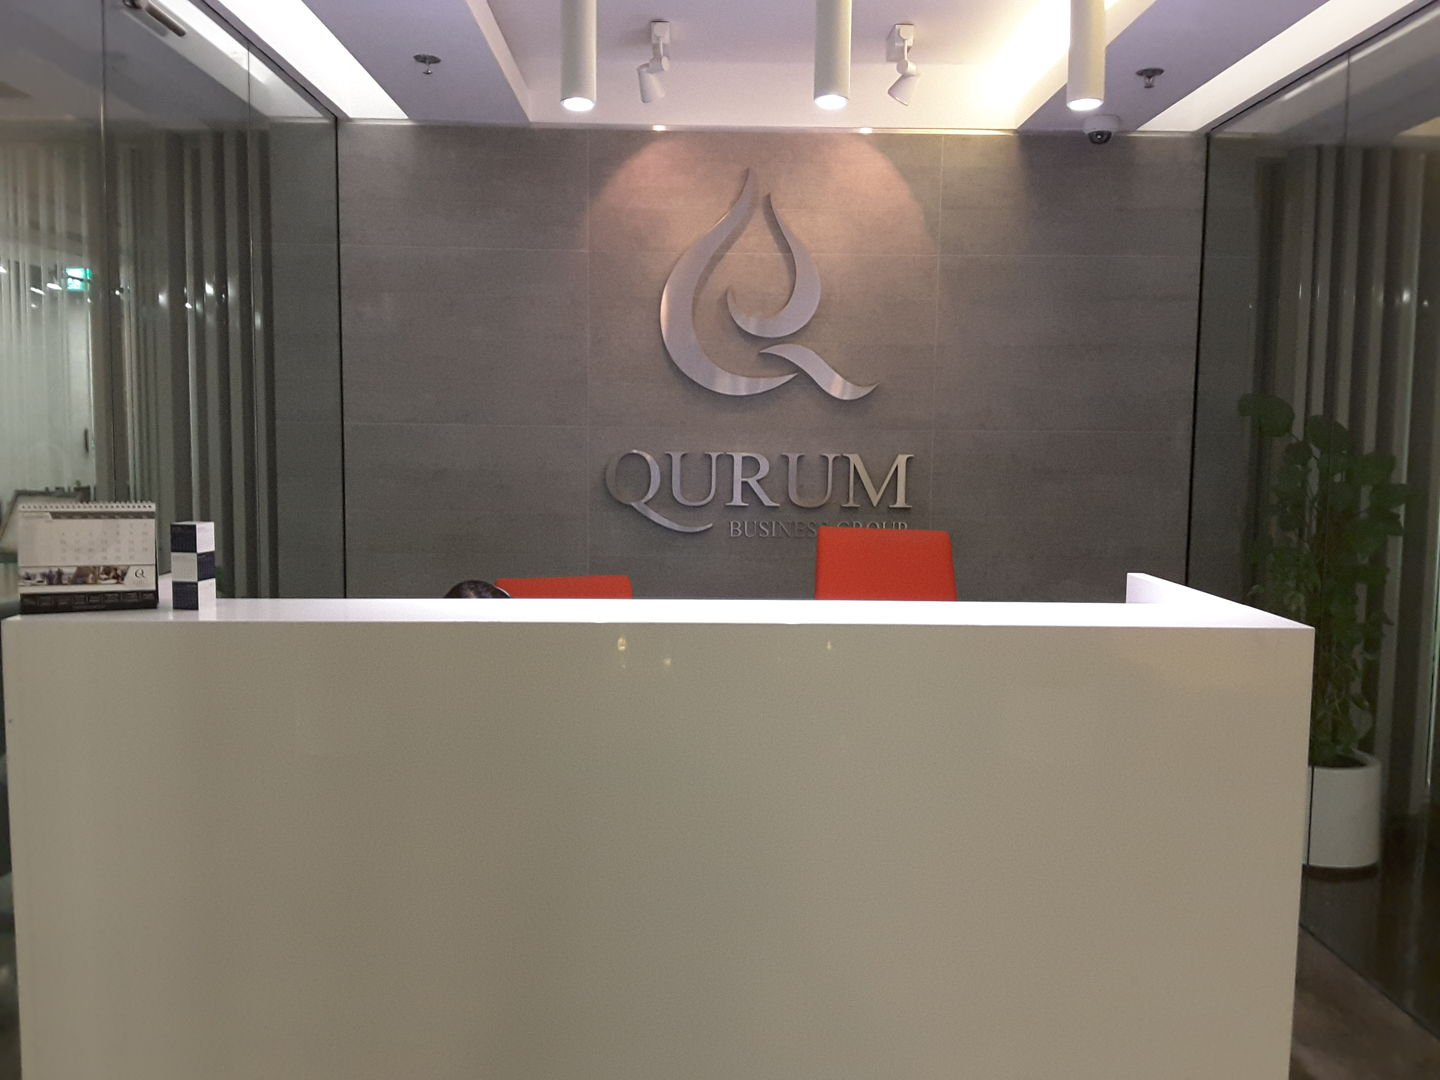 HiDubai-business-qurum-business-group-investments-b2b-services-business-consultation-services-business-bay-dubai-2